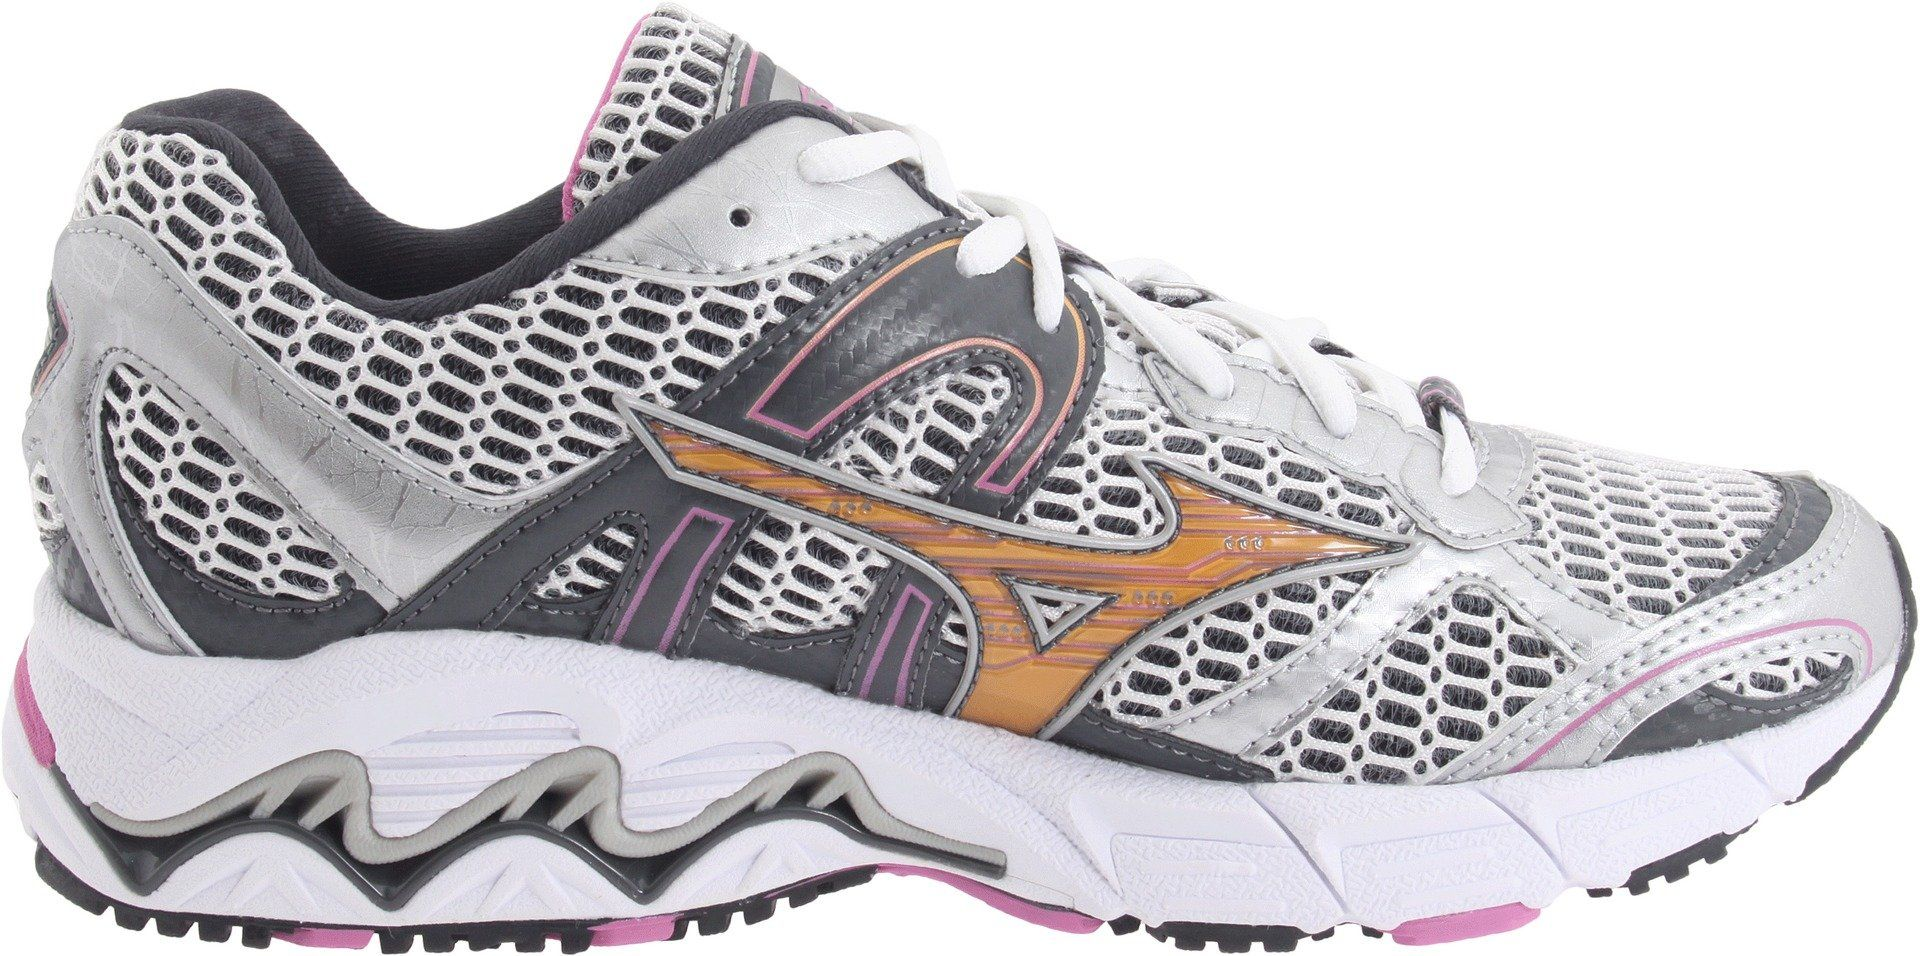 215db6e80f417 Mizuno Women's Wave Alchemy 11 Running Shoe, White/Gold/Black, 6 M ...